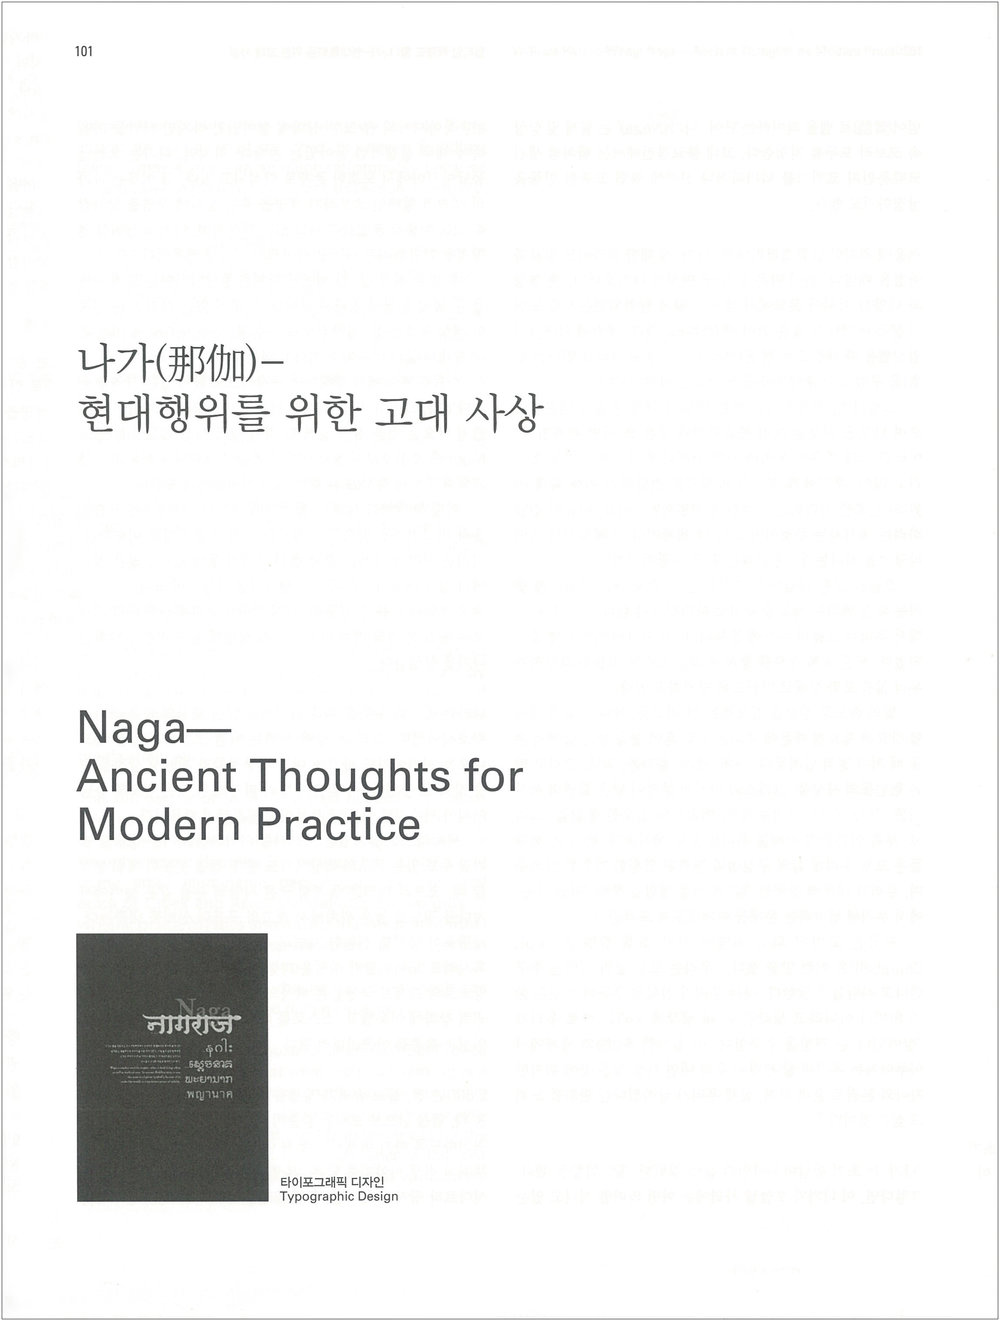 Naga–Ancient Thoughts for Modern Practice  Korean Design Research Institute, April 2005